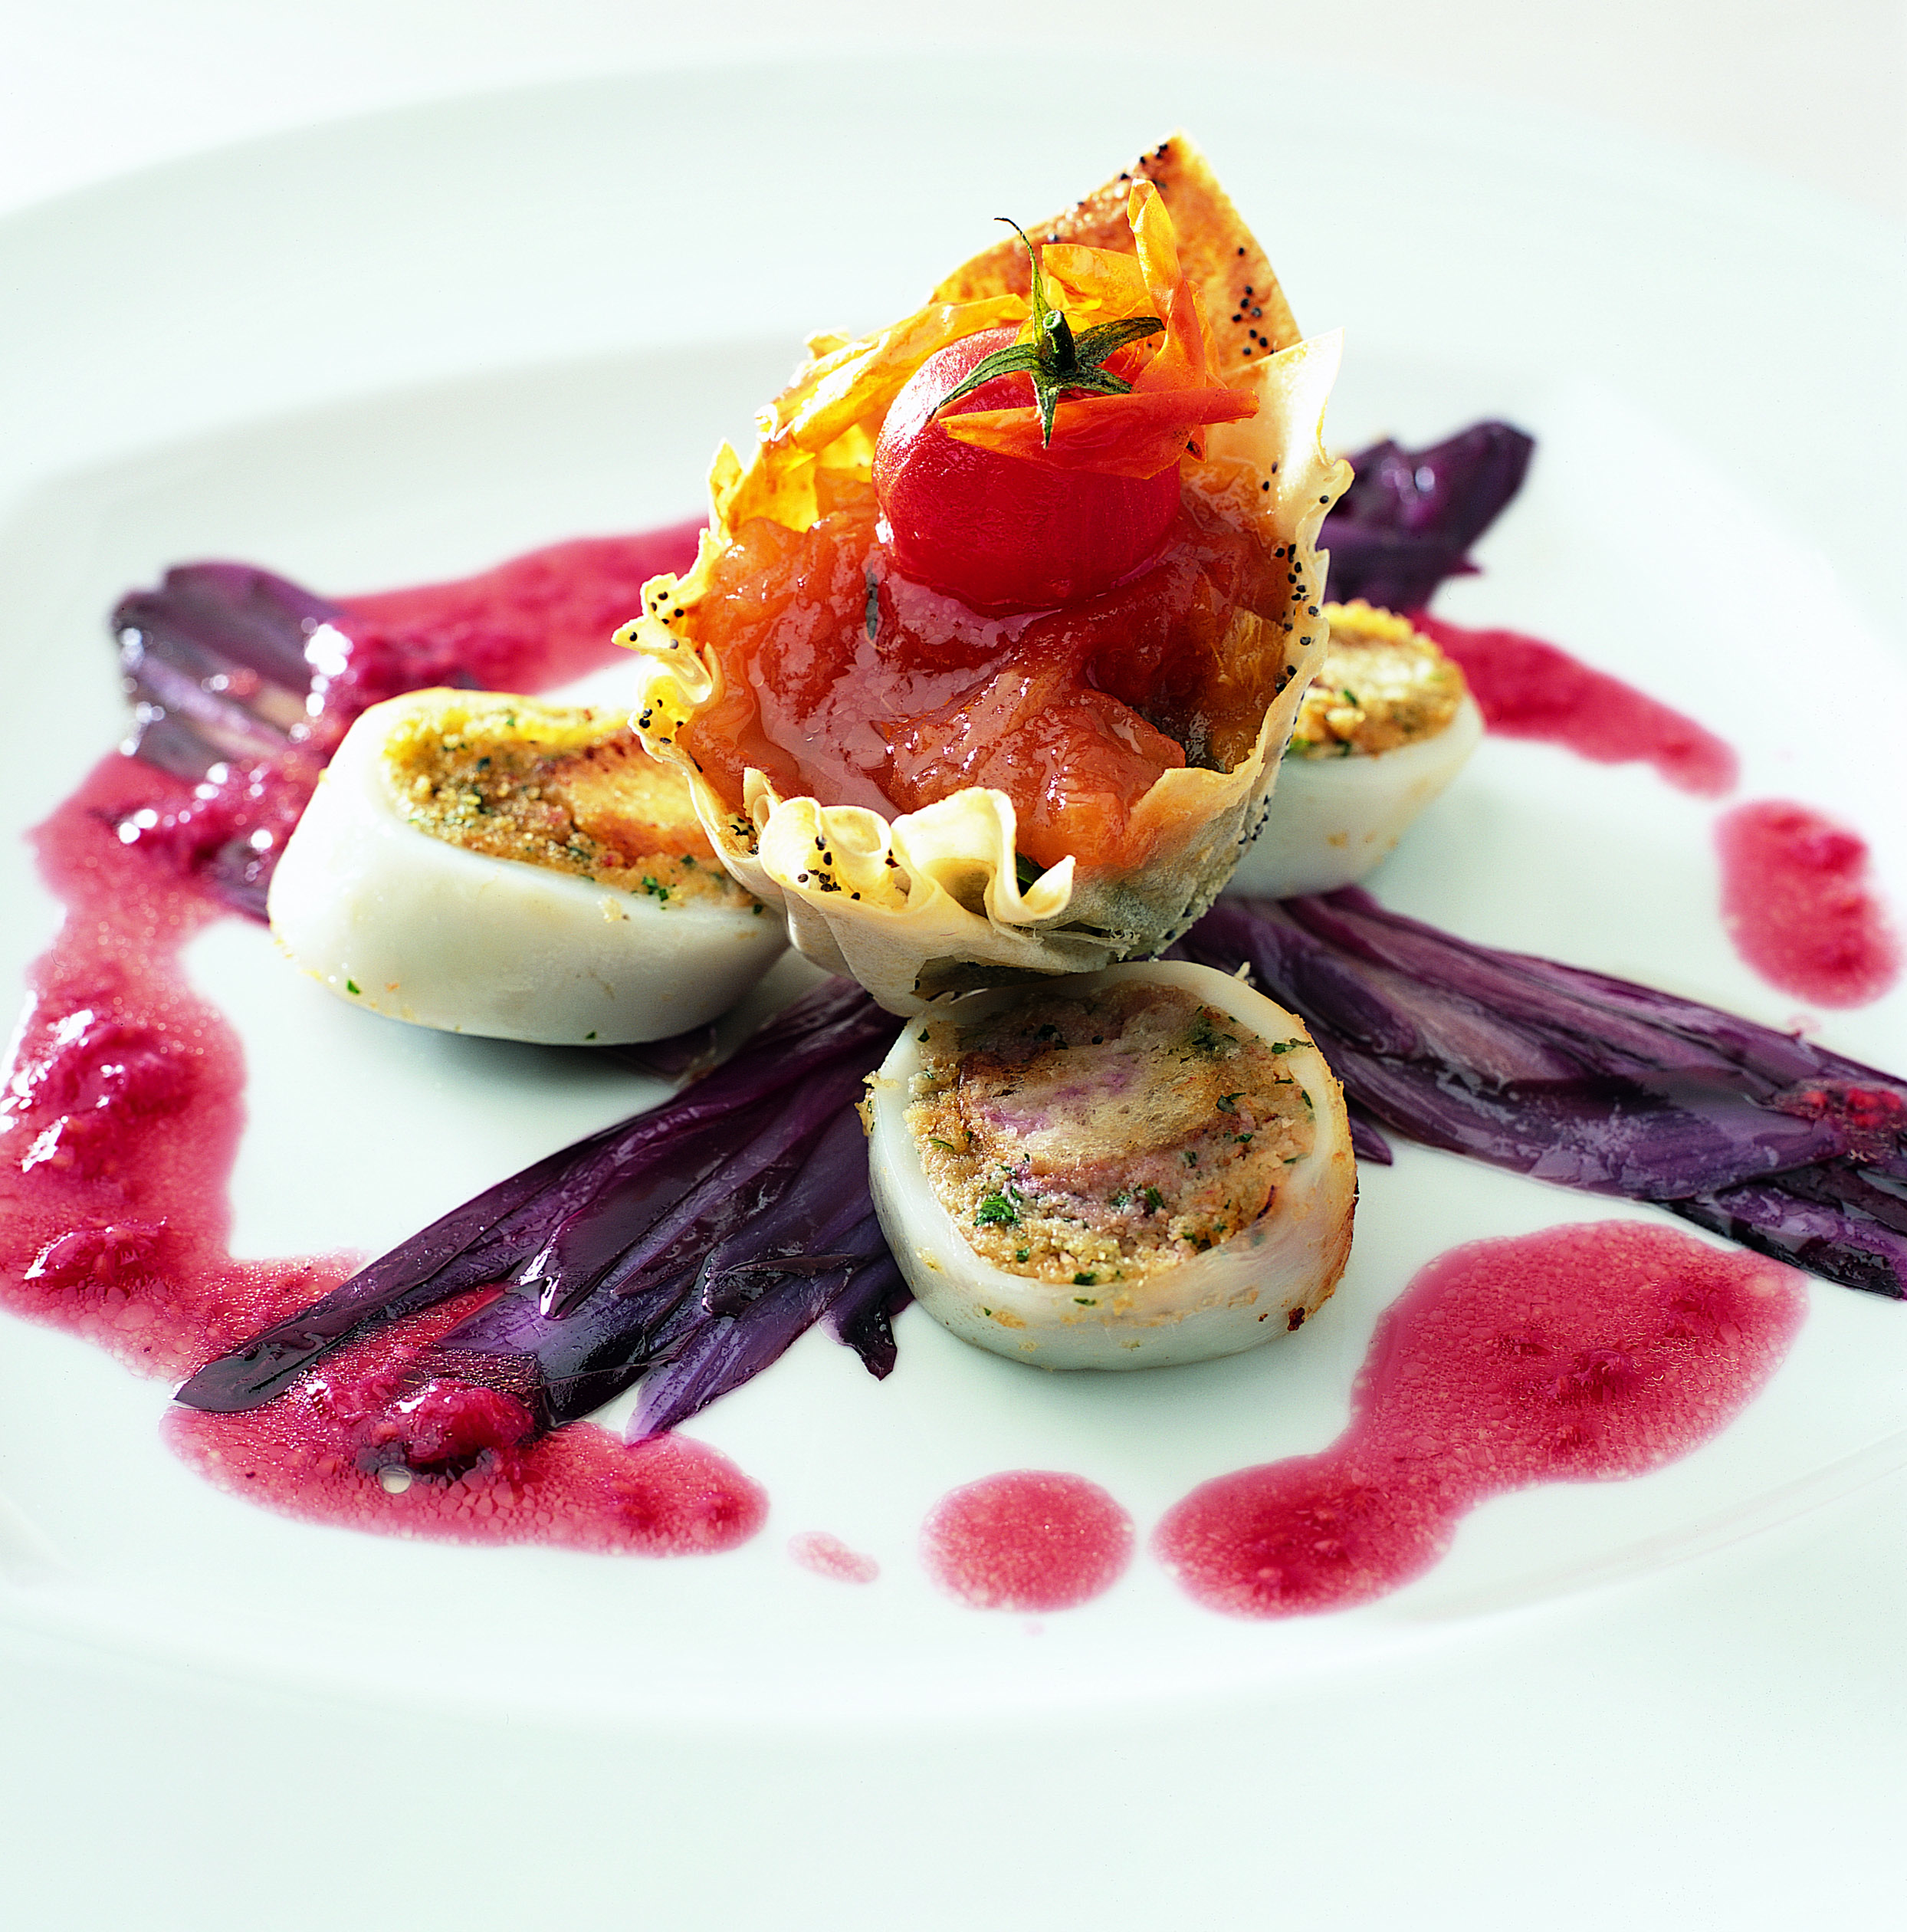 Stuffed squid with sweet and sour red chicory, tomato jam